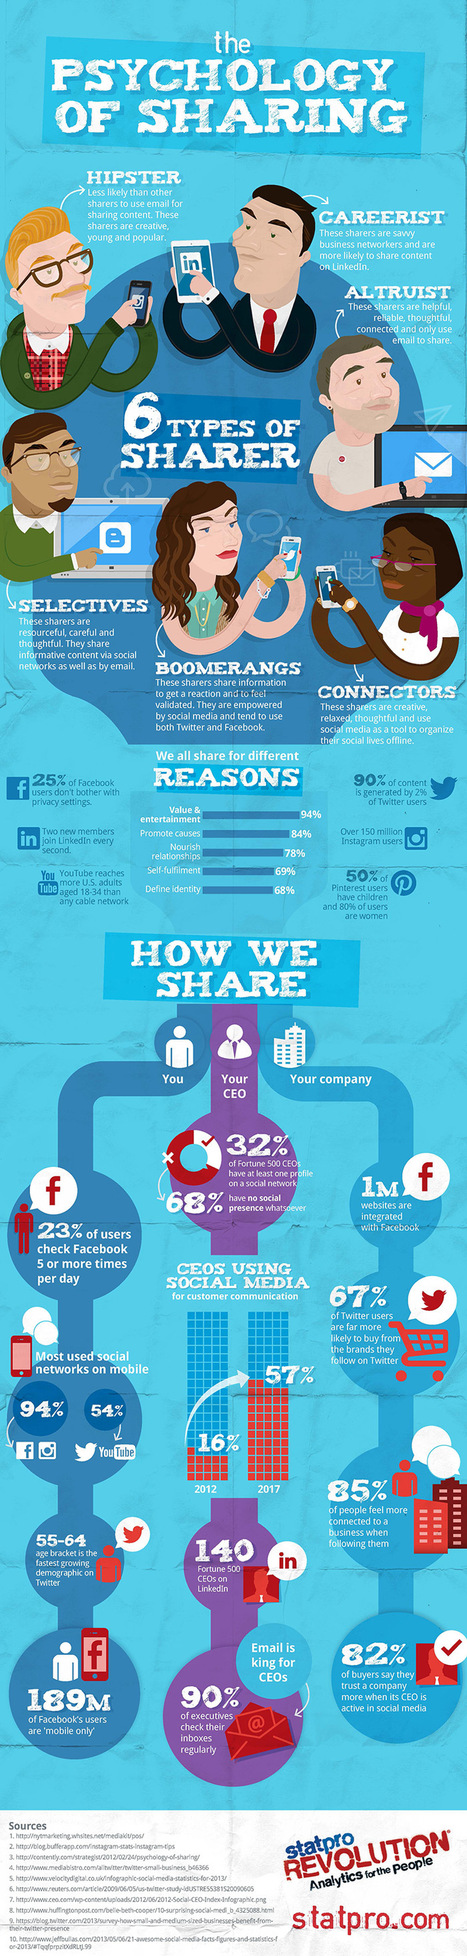 What Type of Social Sharer Are You? - Nonprofit Hub | Social Media for nonprofits | Scoop.it